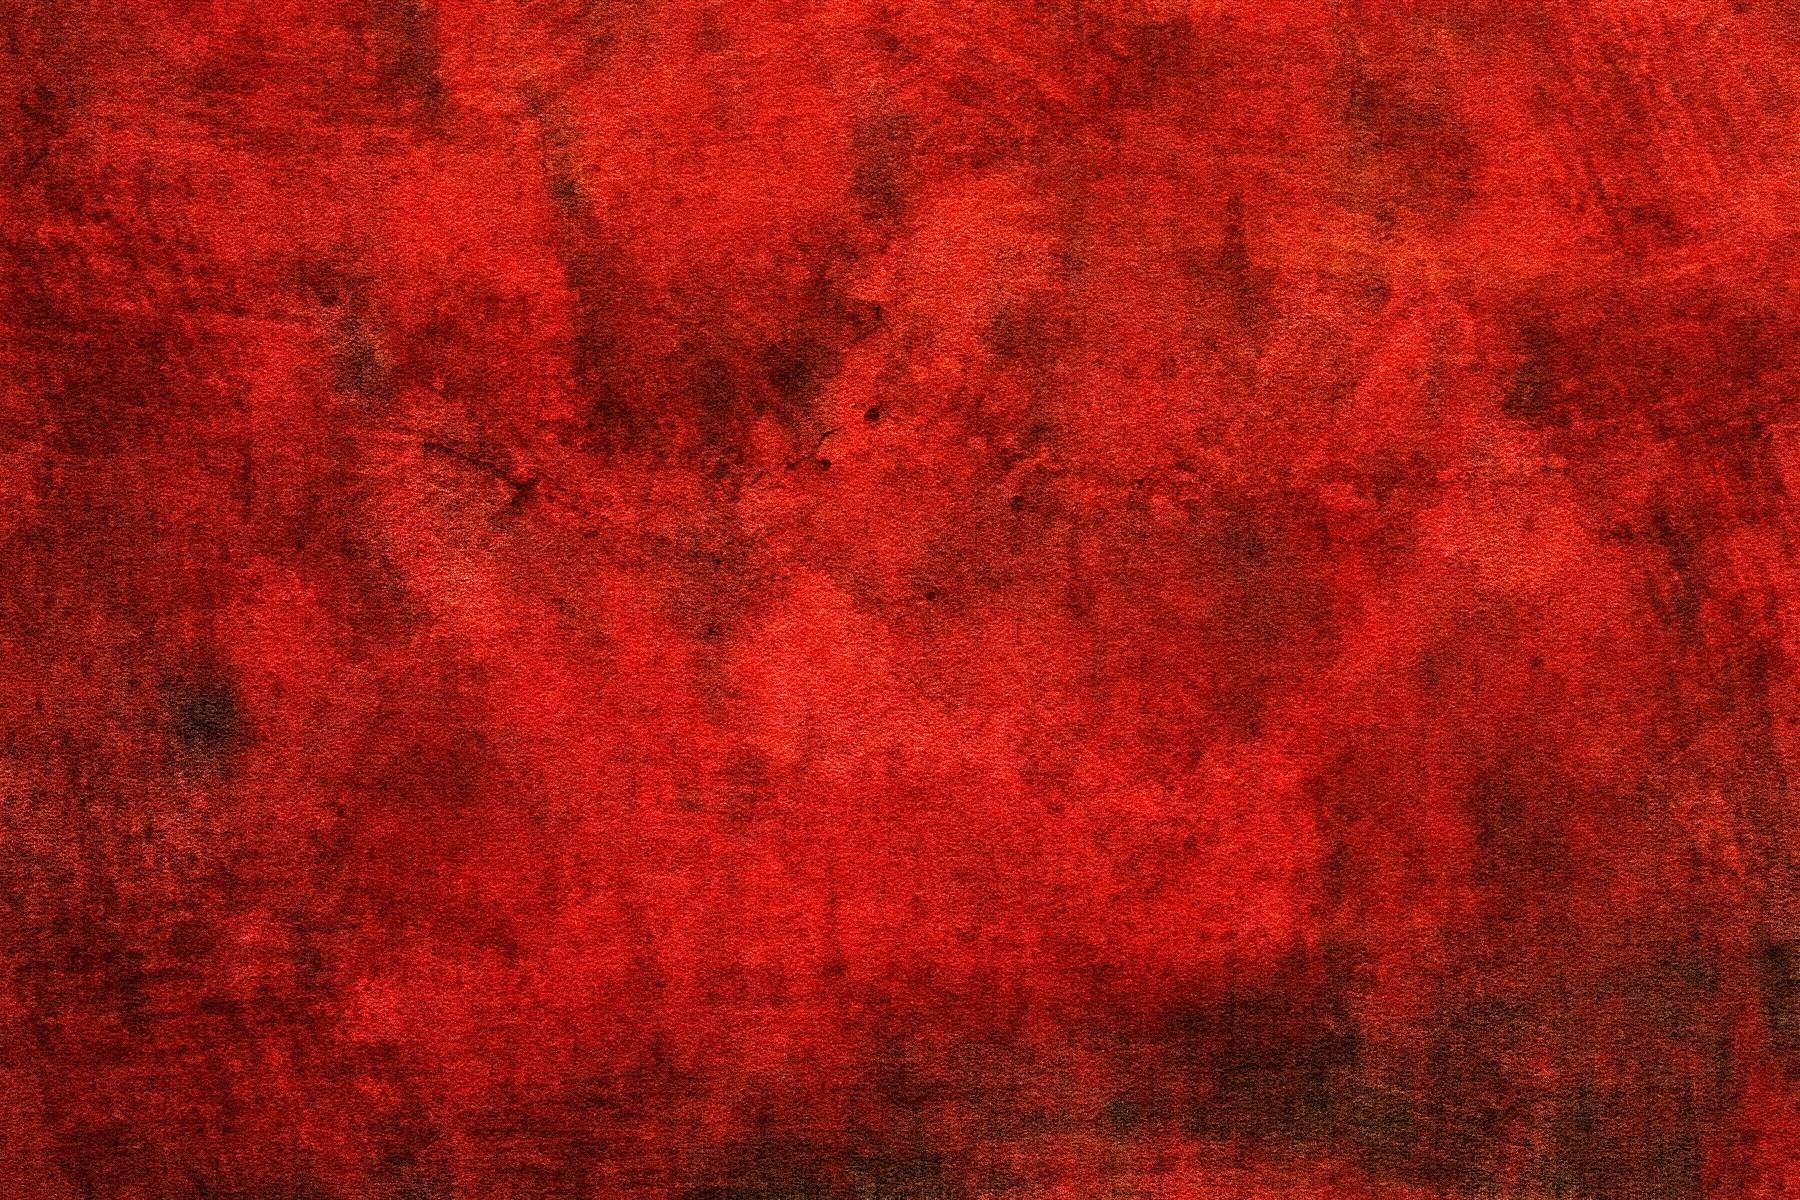 Free Red Texture Wallpapers Hd Red wallpaper Texture images Textured wallpaper